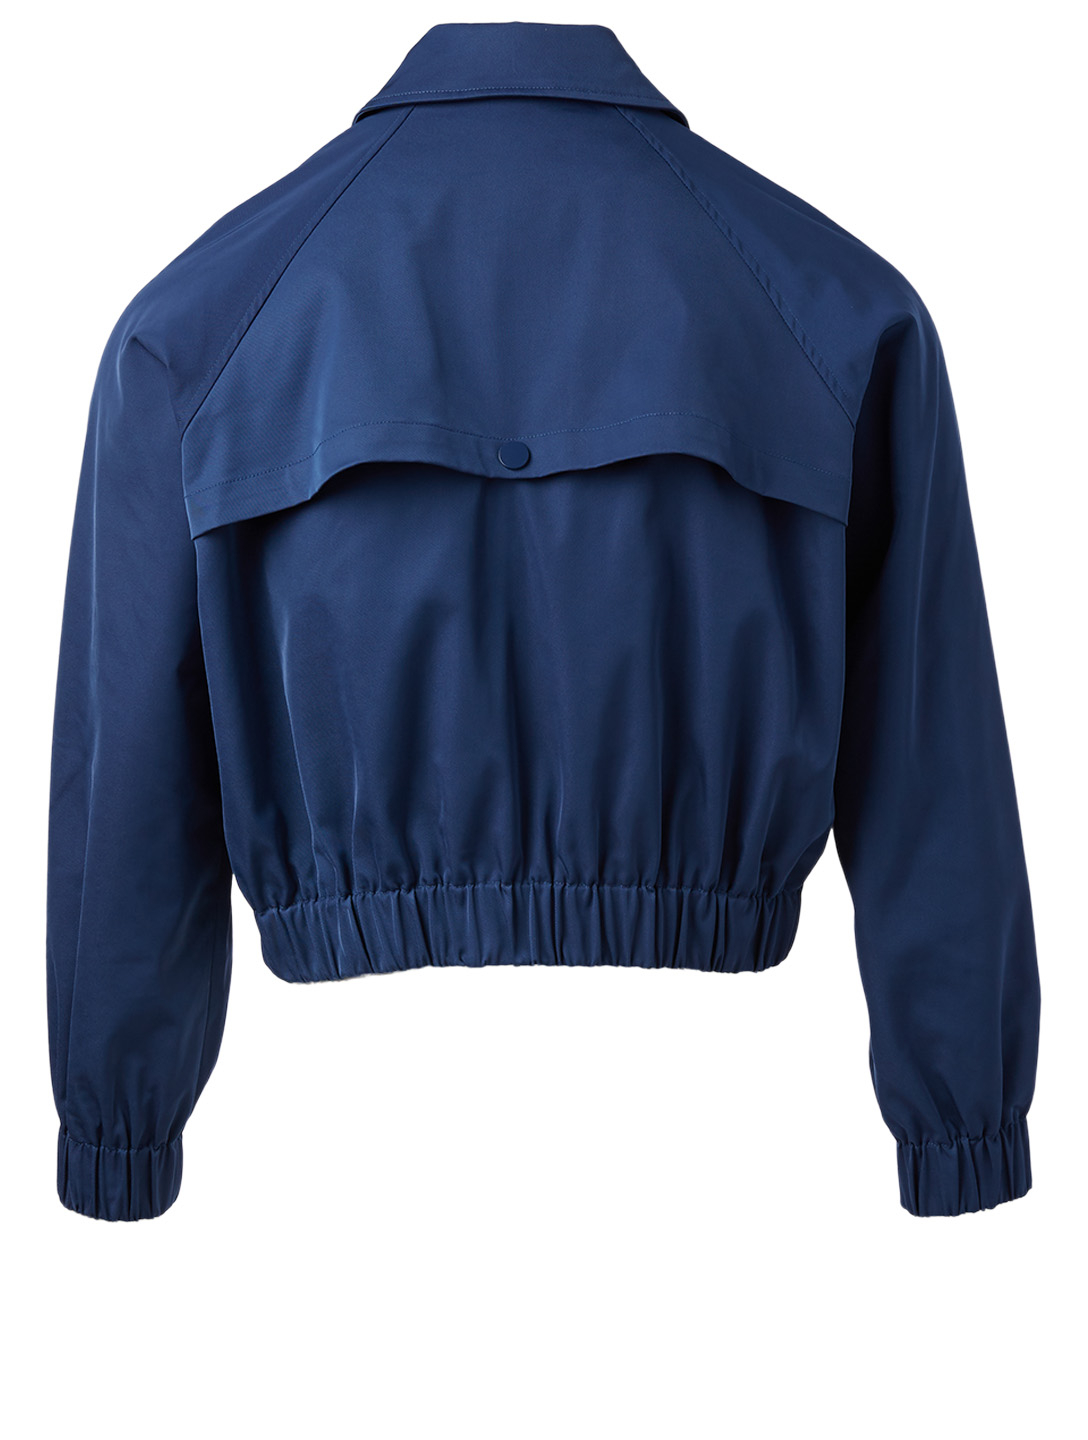 OPENING CEREMONY Cropped Raglan Jacket Women's Blue